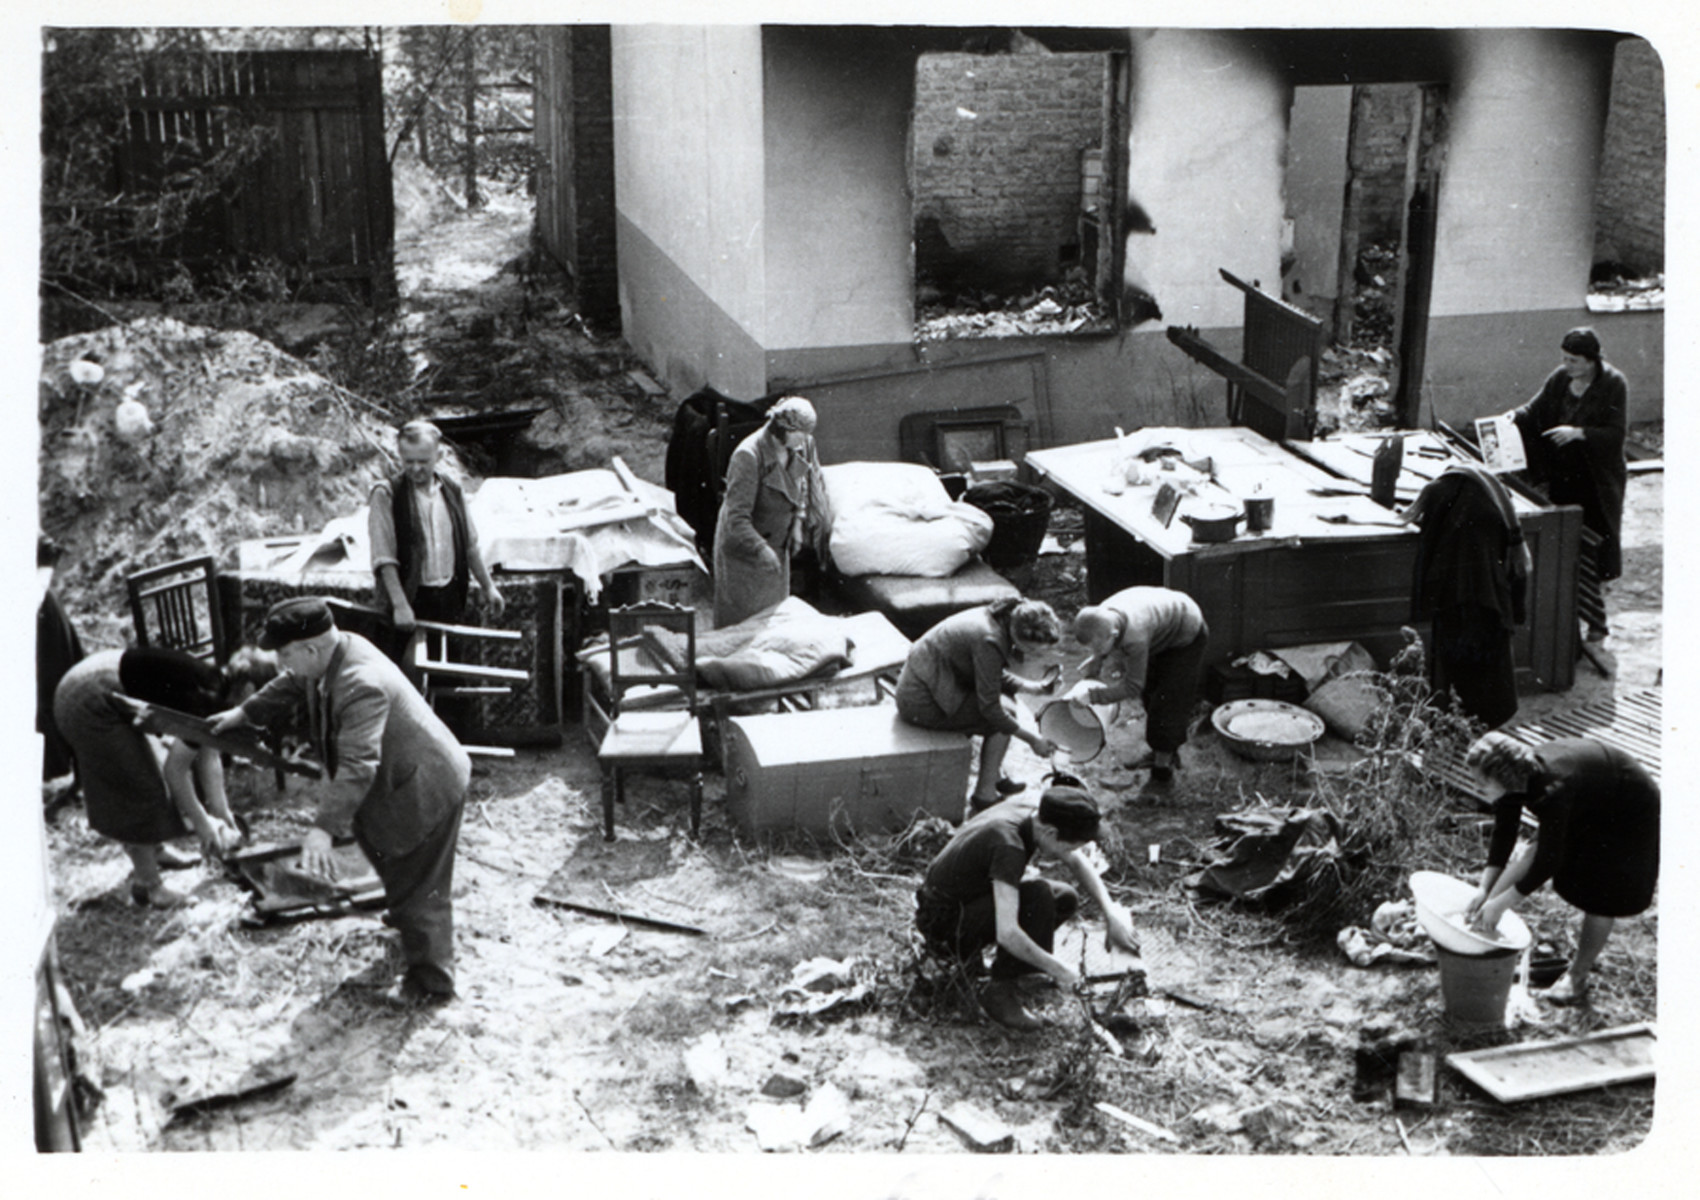 View from above of a Polish family performing their daily chores amidst the remnants of their household furnishings that they have reassembled outside the charred ruins of their home in Warsaw.  The boy with the hatchet is Albert Turowski, who later became a film actor in postwar Poland.